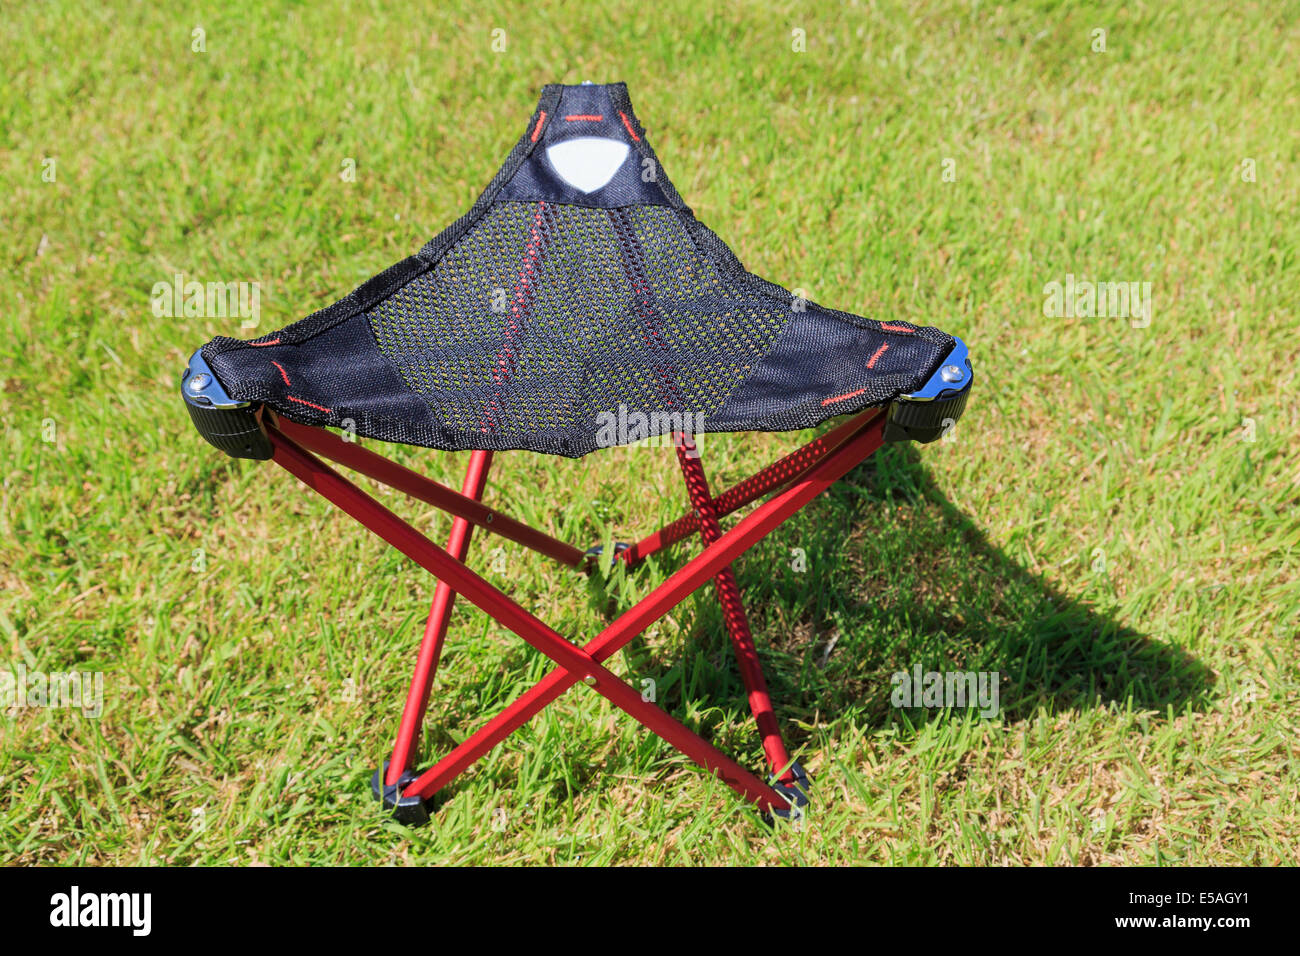 Tremendous Folding Portable Three Legged Tripod Camping Stool With A Unemploymentrelief Wooden Chair Designs For Living Room Unemploymentrelieforg